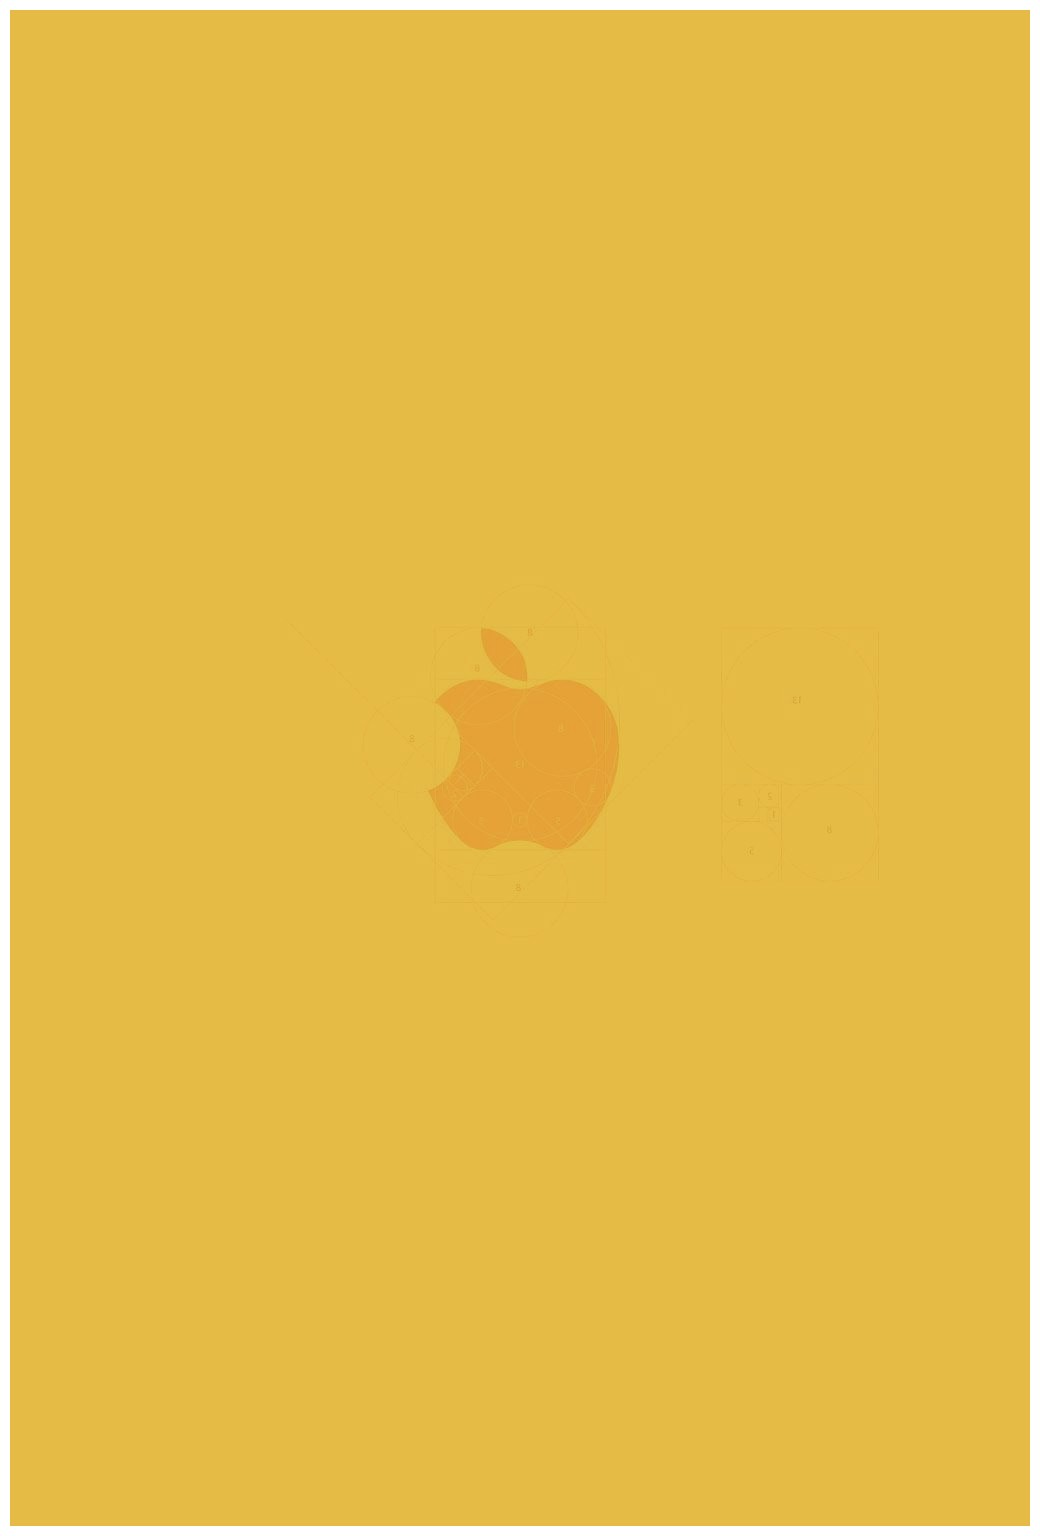 Pastel Yellow Iphone Wallpaper Tumblr Aesthetic Wallpapers